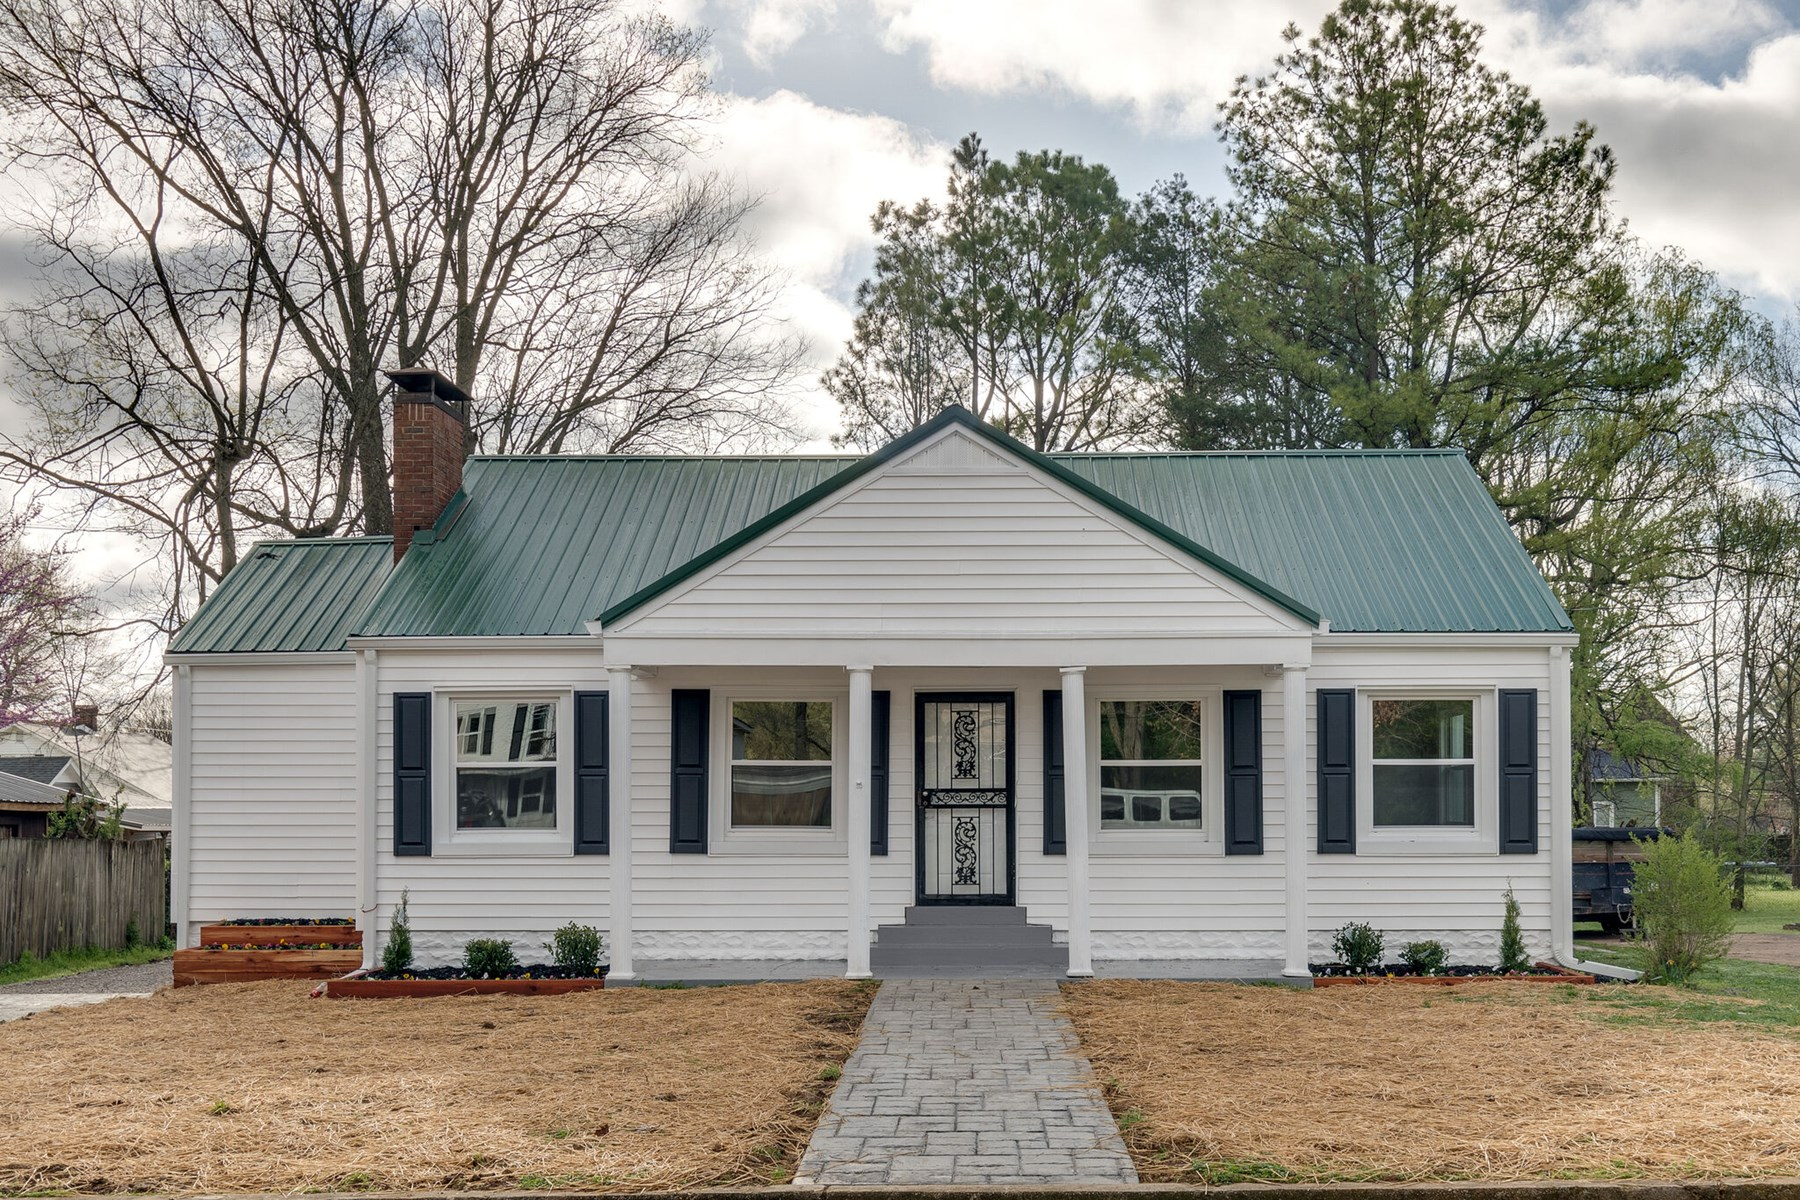 Home for Sale in Town in Mount Pleasant, Tennessee.